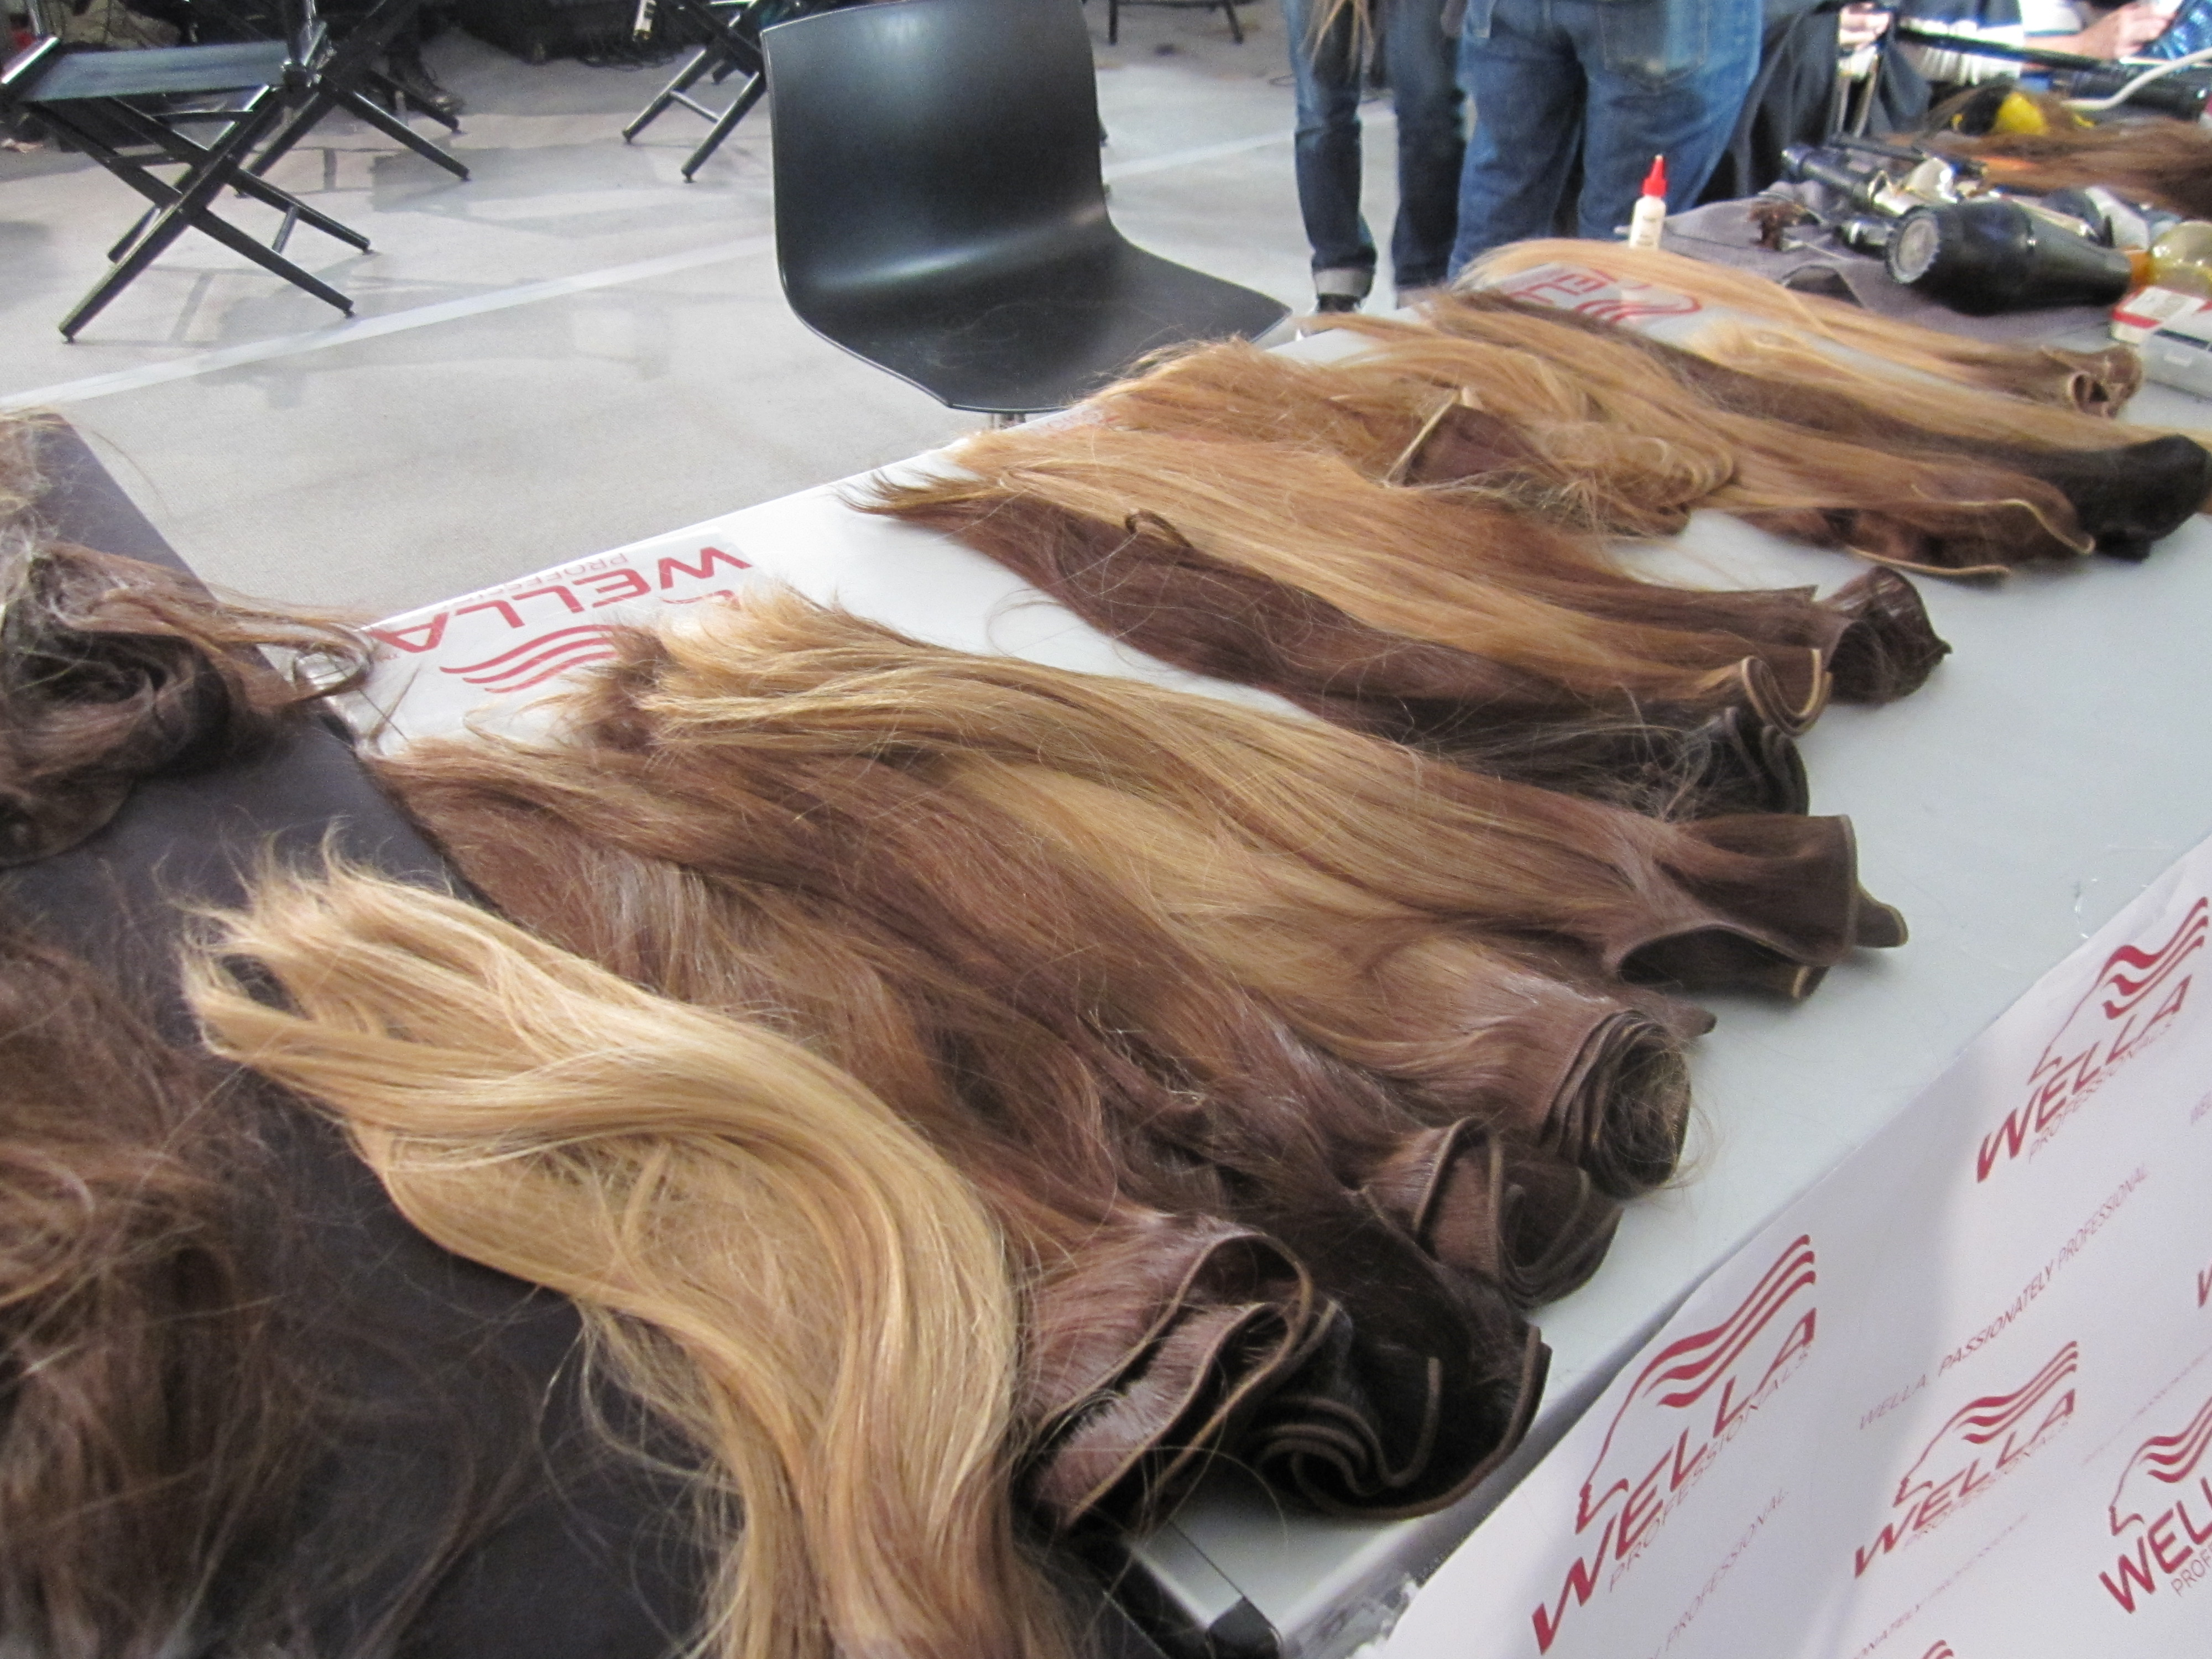 The ombred wefts of hair colored by Aura Friedman